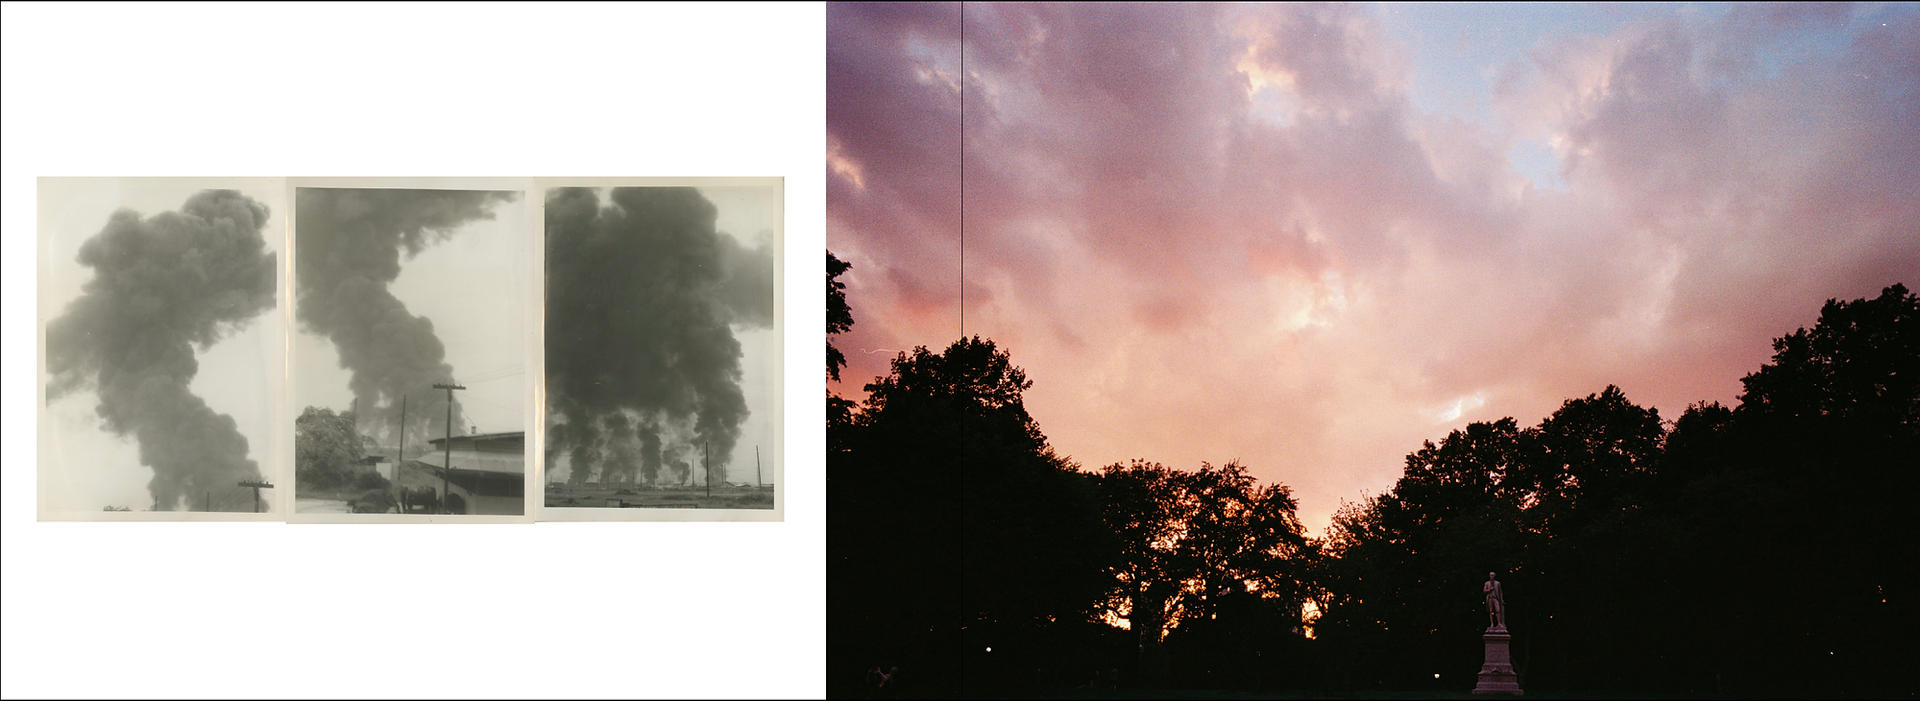 This is a spread design of the book, the final product of this project.  Three pictures of a bombing on the left was taken by Jim Koehler when he was in Danang. On the right, my picture was taken at a park.